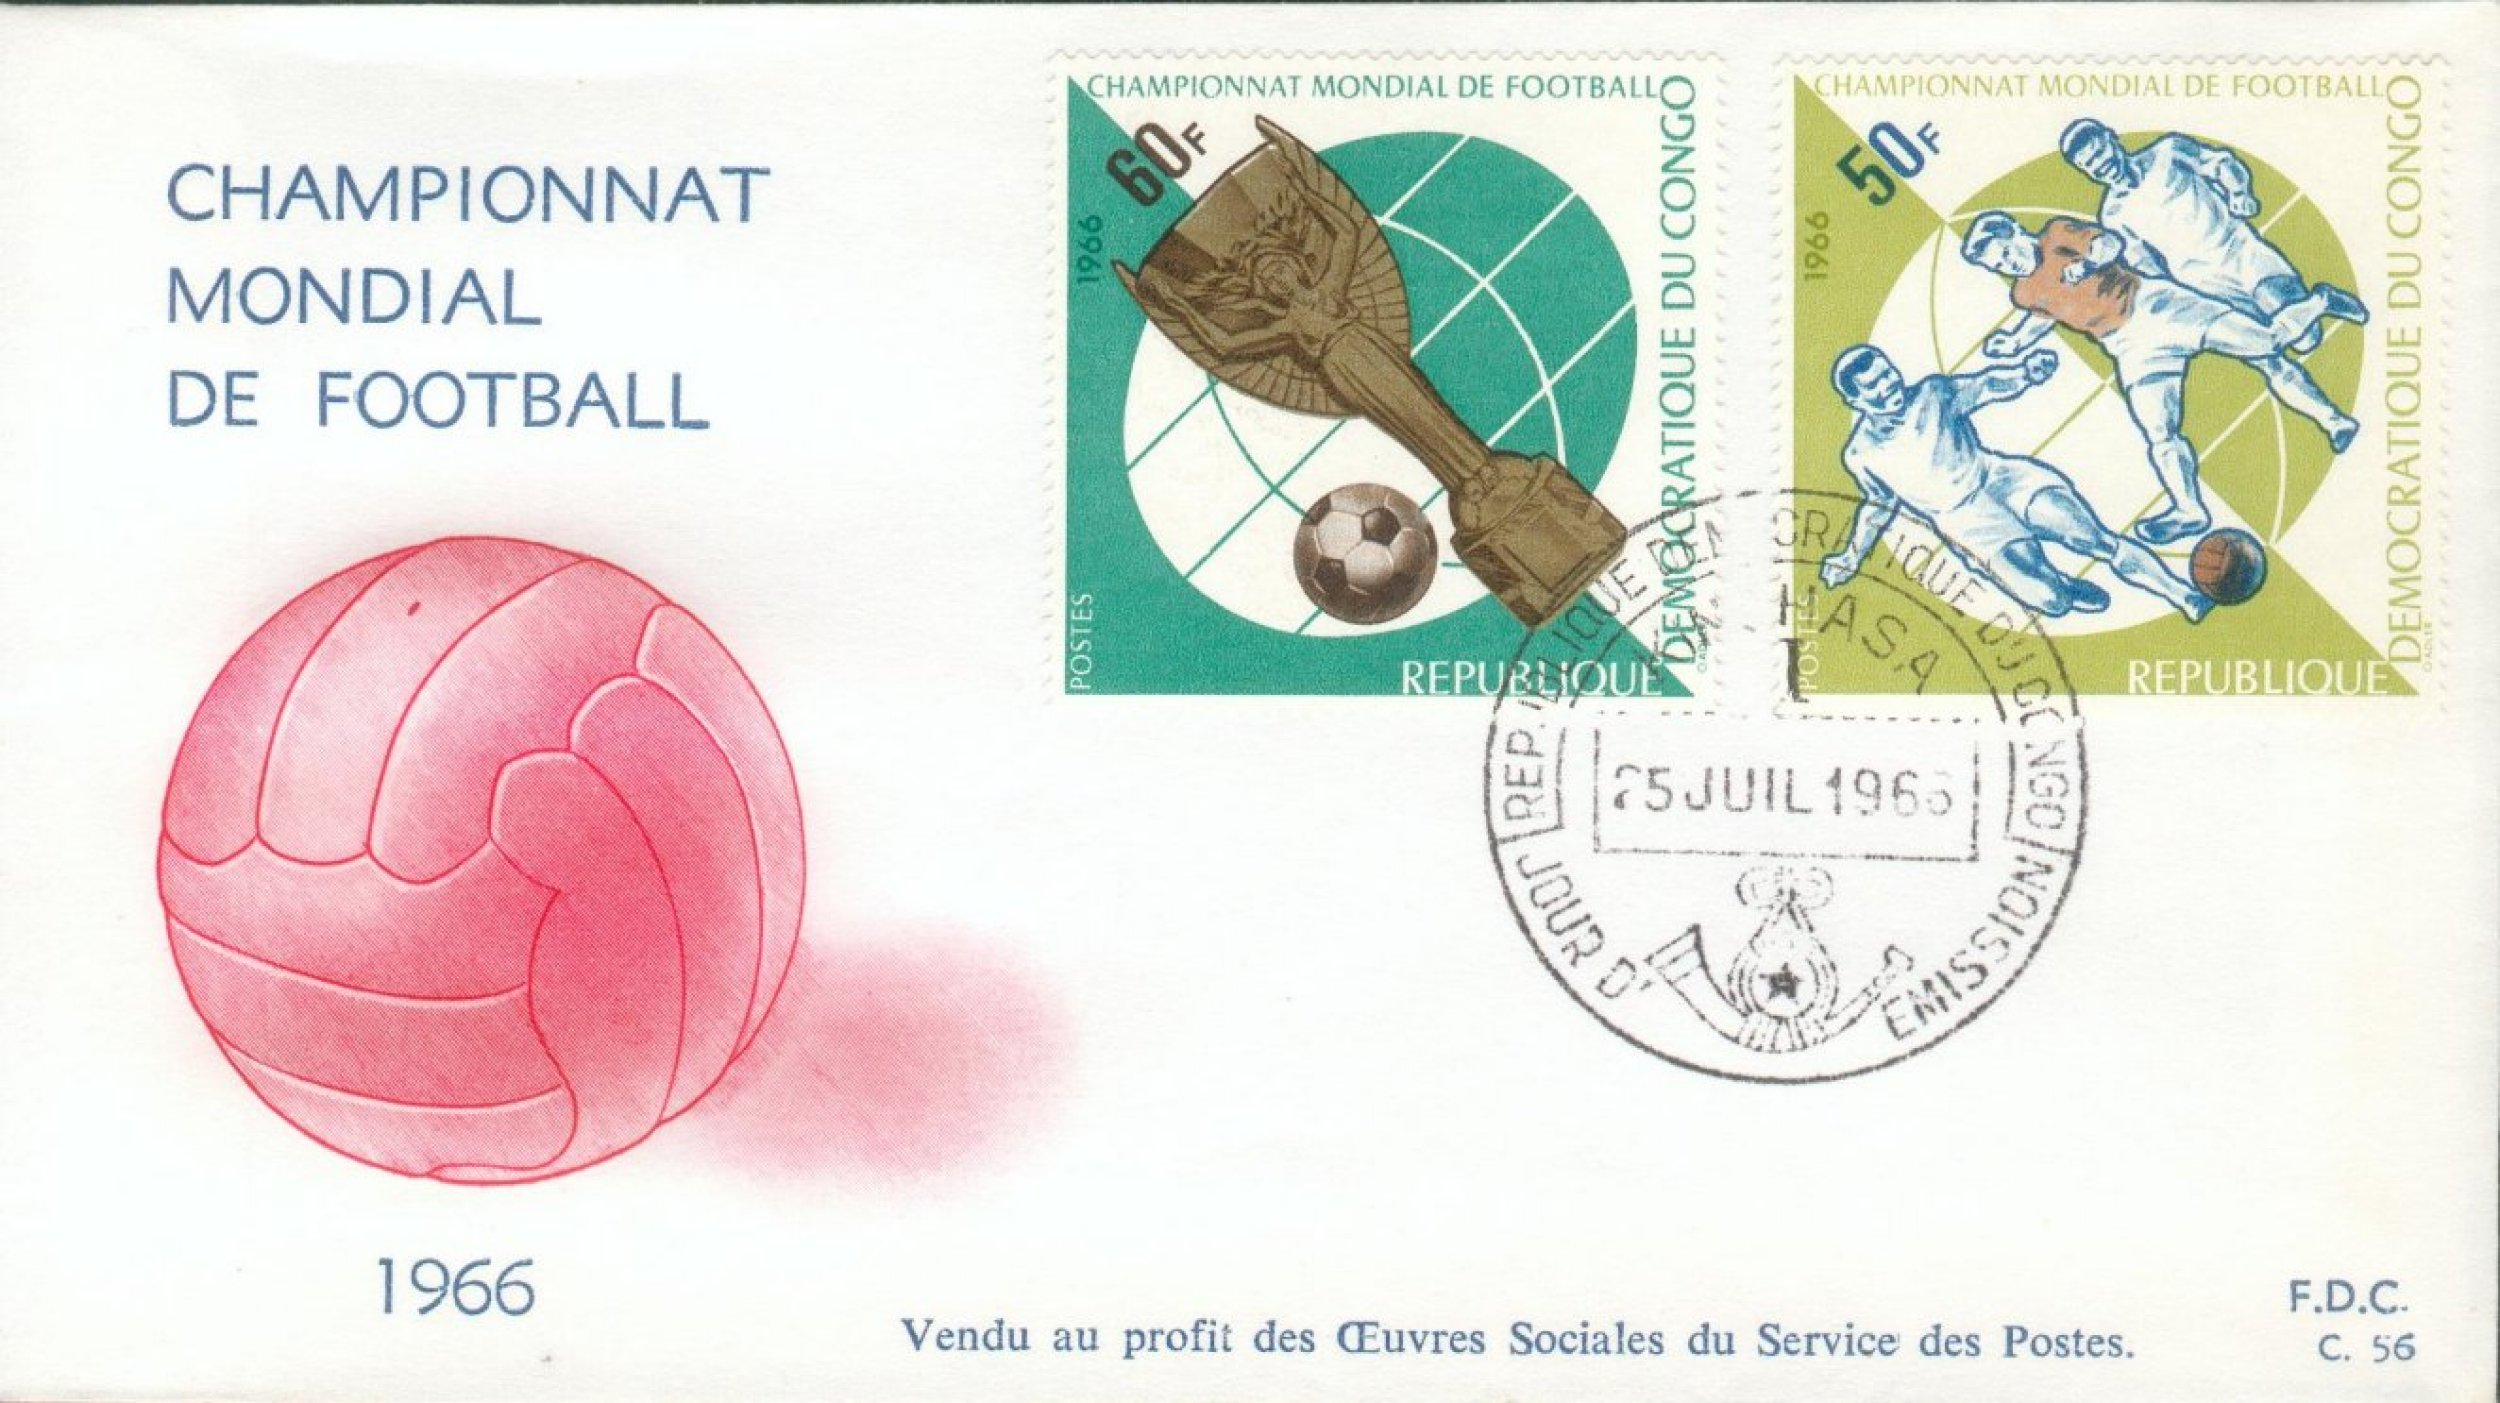 FDC C56